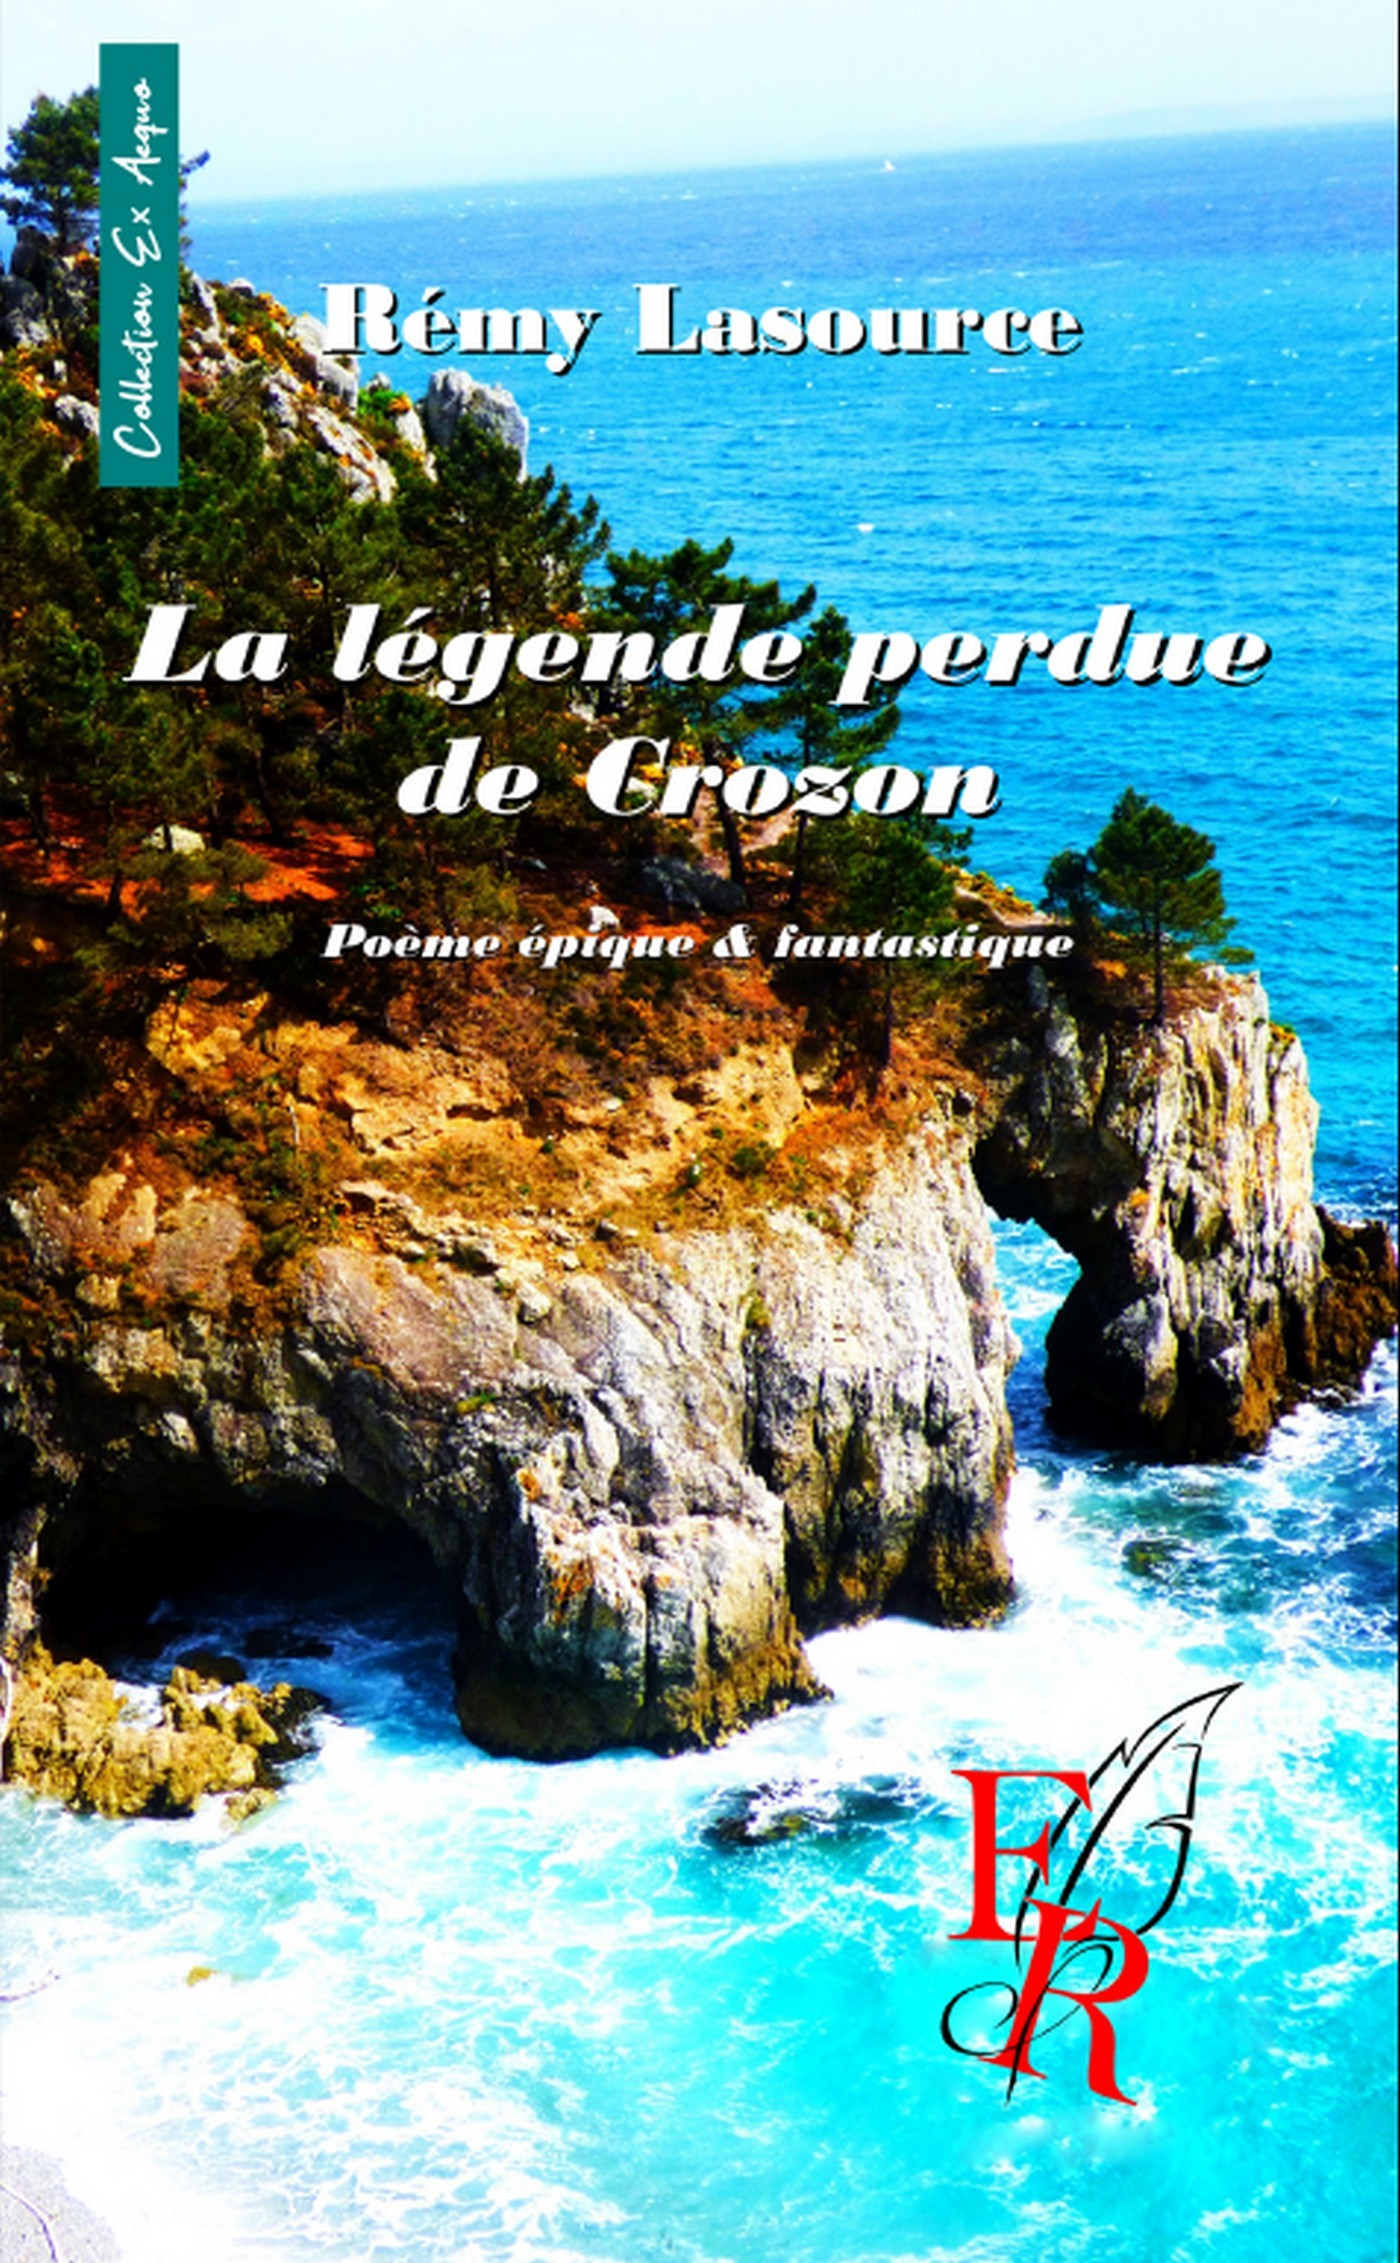 LA LEGENDE PERDUE DE CROZON